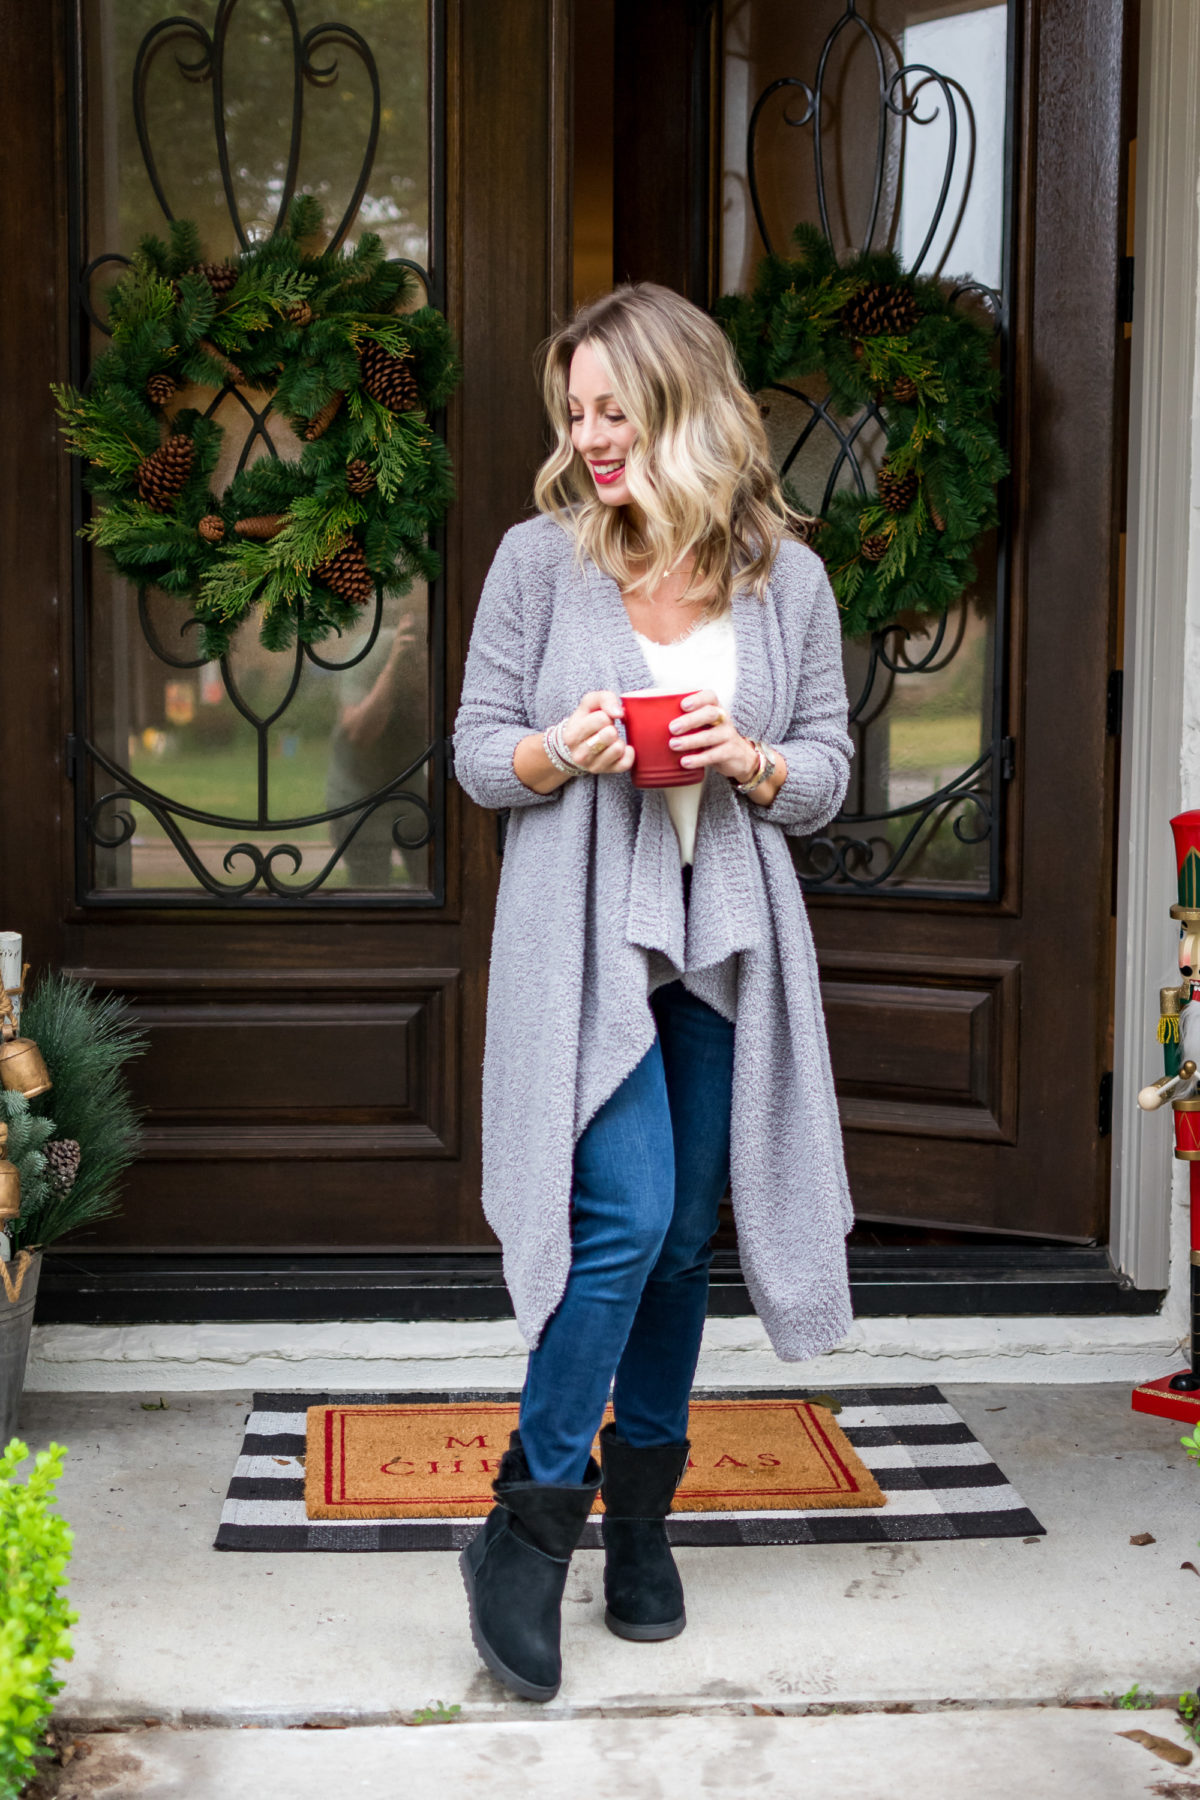 UGG cardigan and boots for her